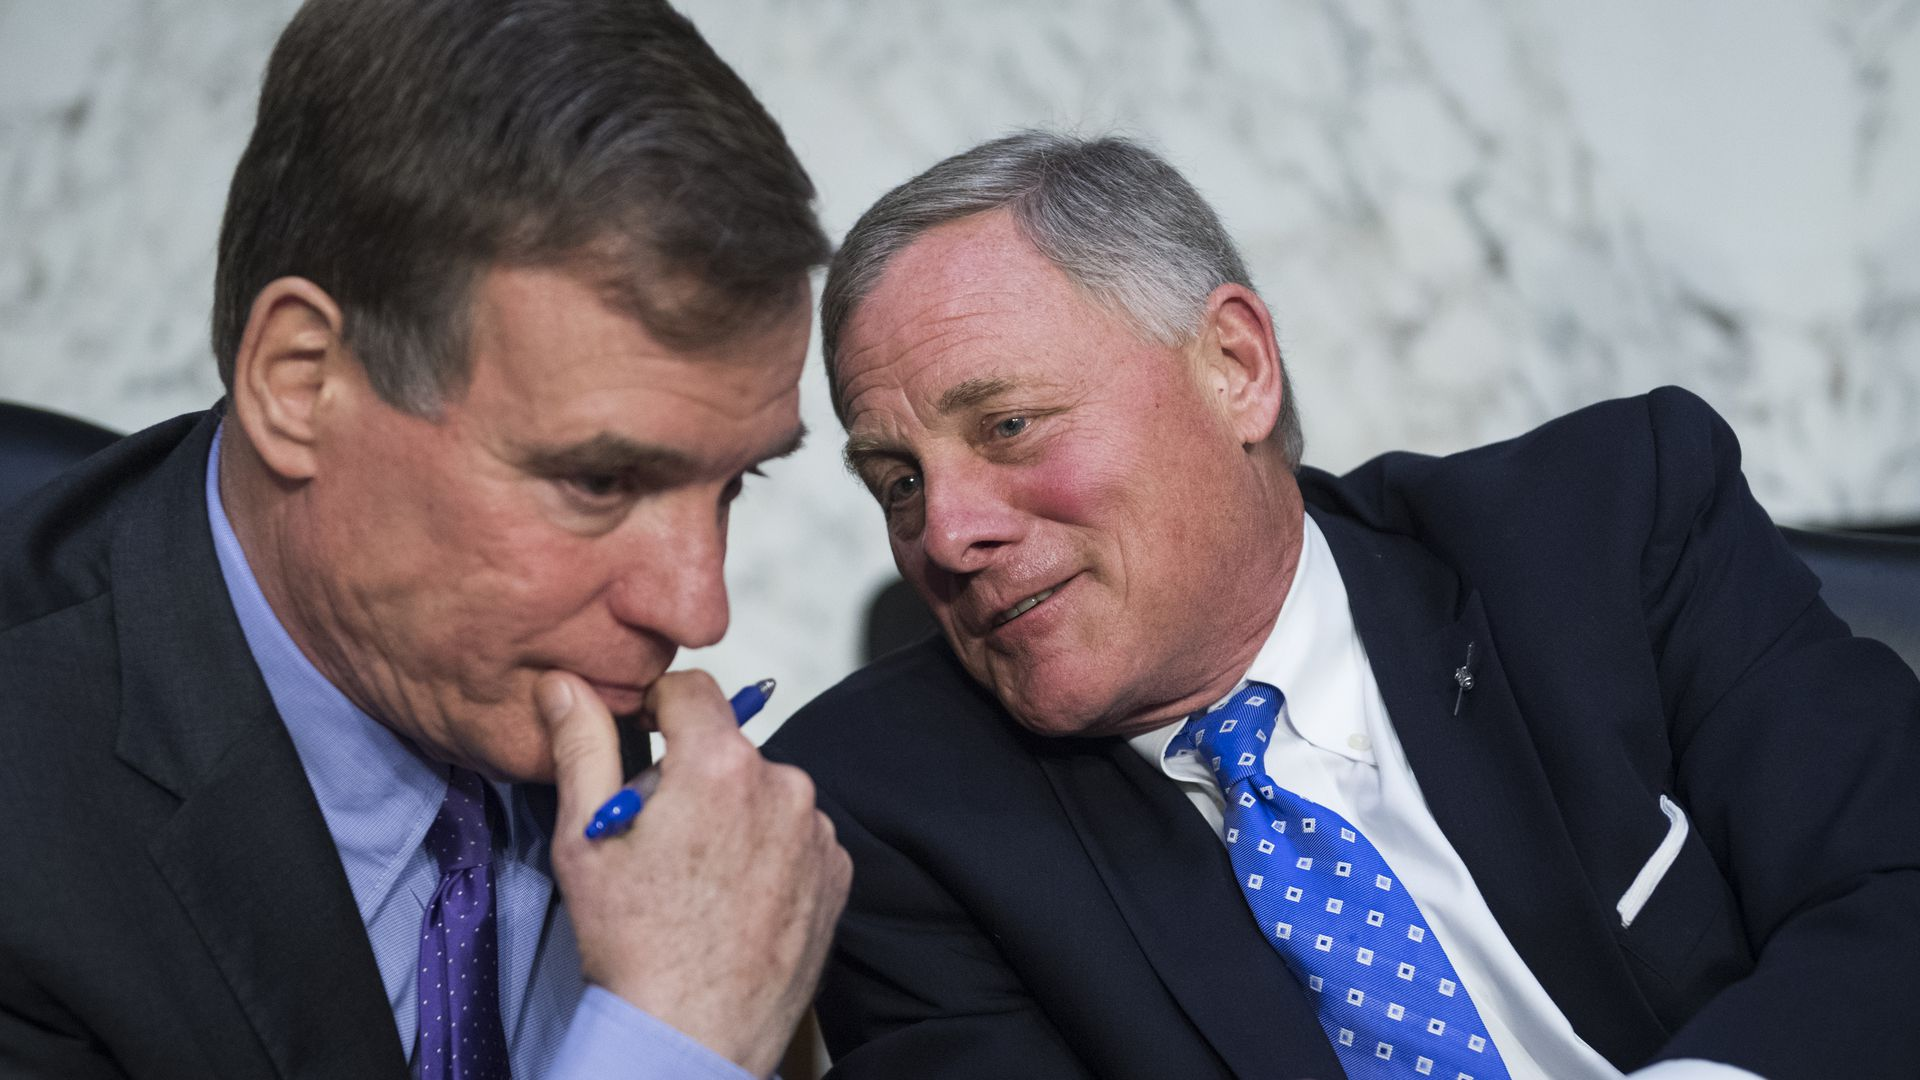 Senators Mark Warner and Richard Burr